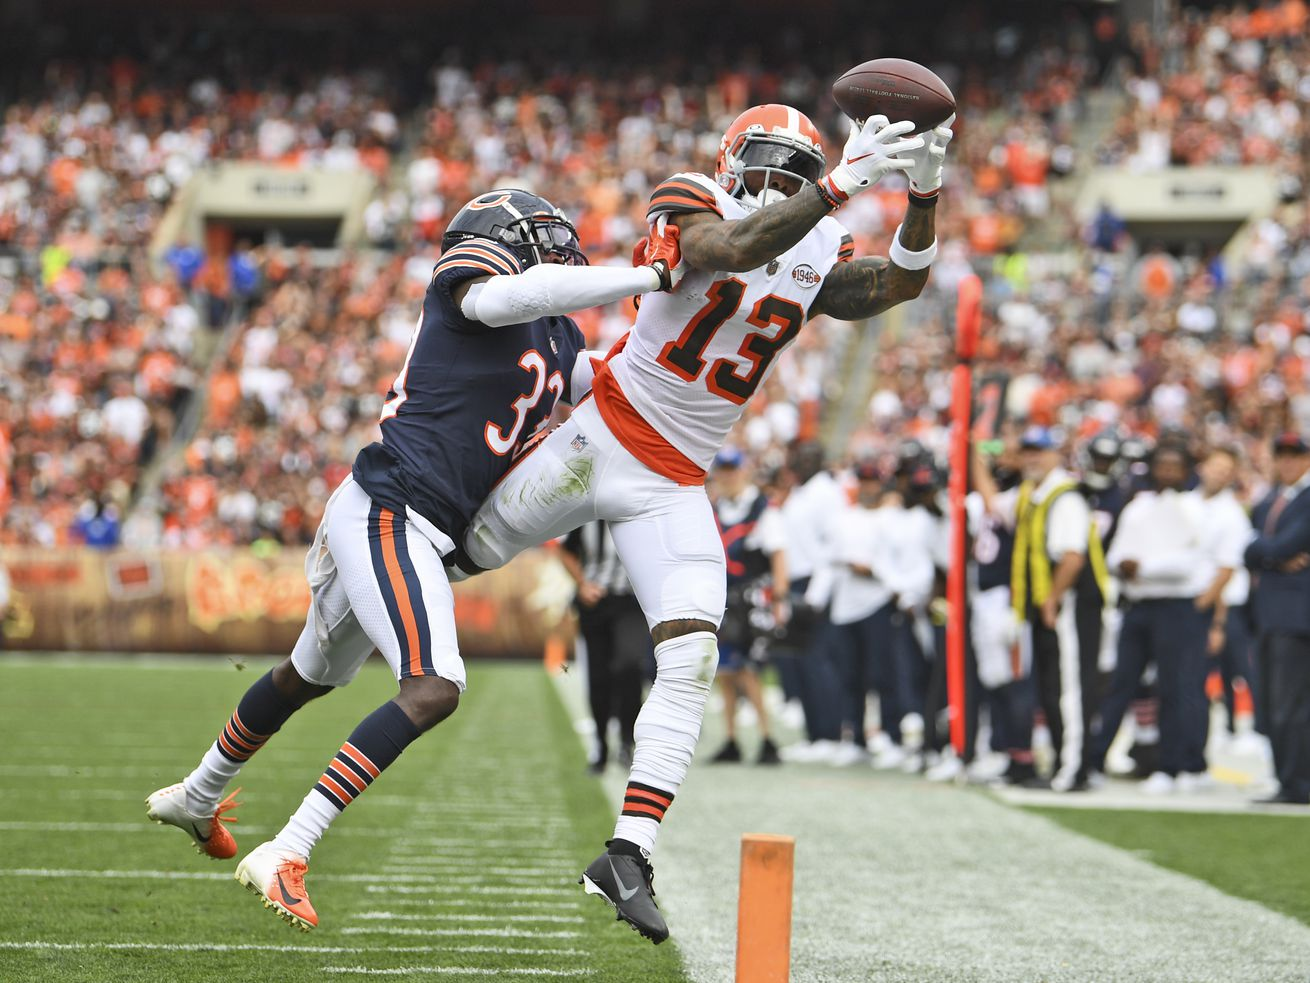 Bears second-year cornerback Jaylon Johnson (33, defending Browns wide receiver Odell Beckham, Jr.) has six pass break-ups this season — tied for fourth in the NFL.